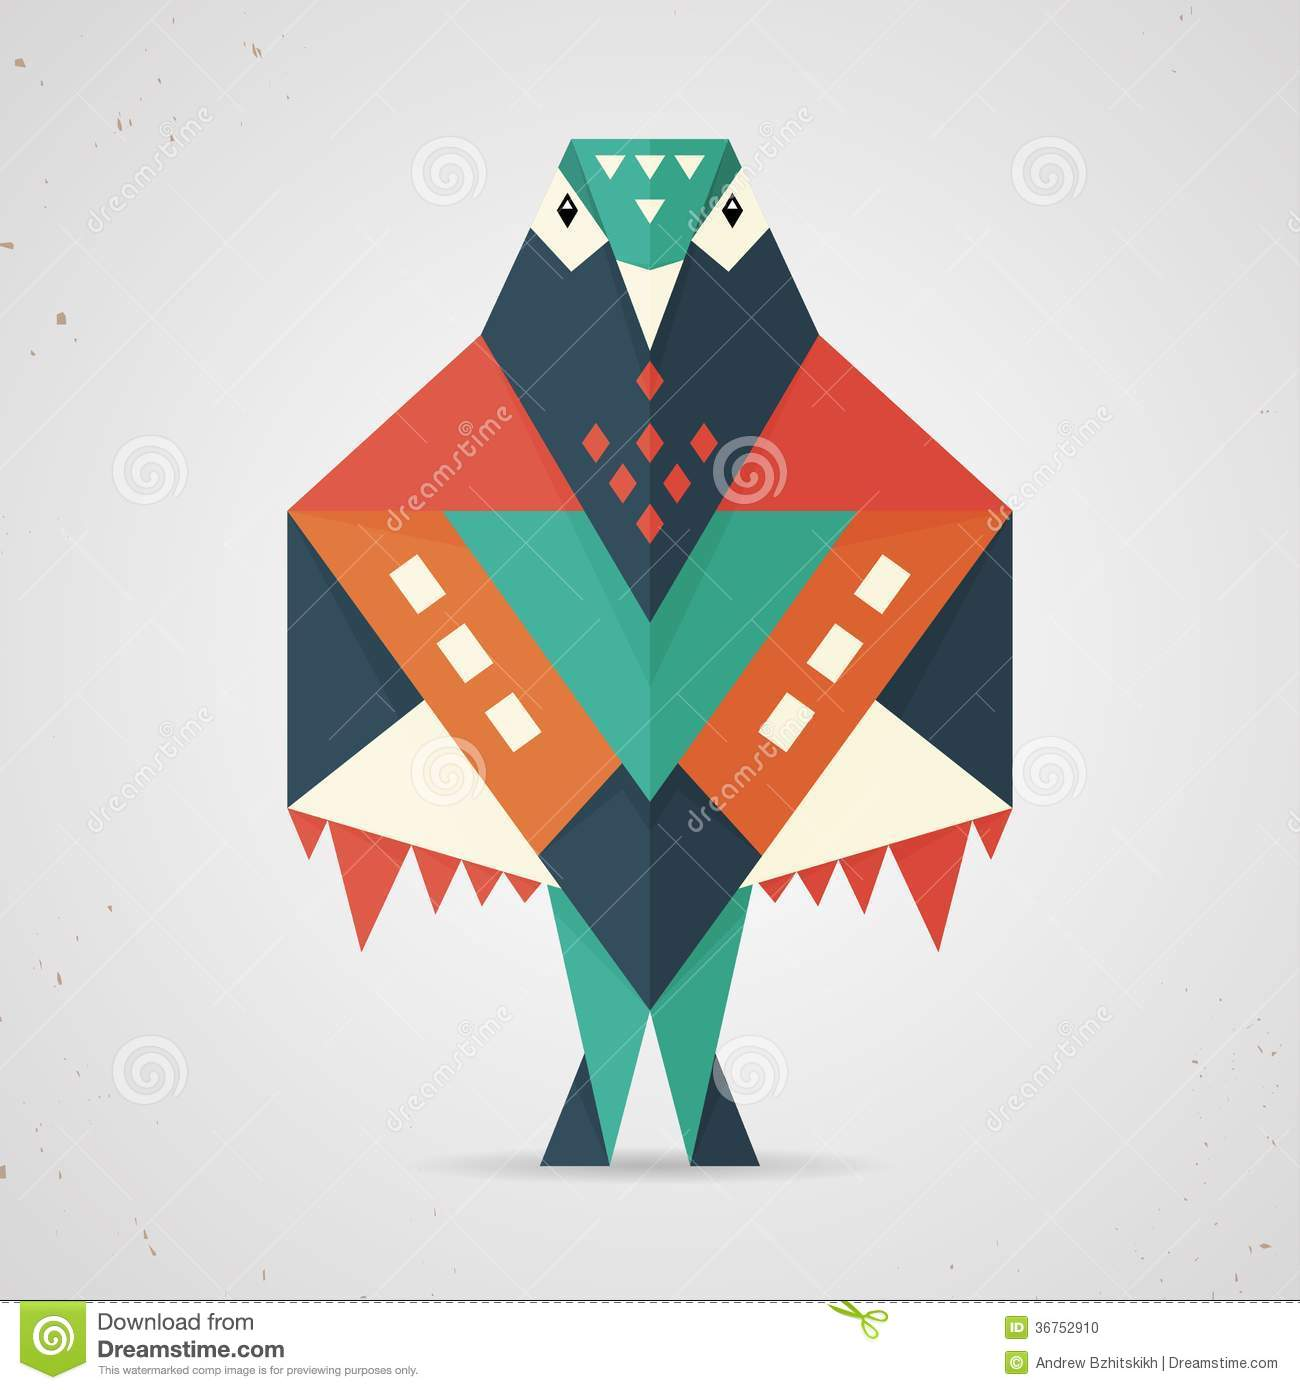 Colourful Origami Pigeon Or Dove Stock Photo - Image: 36752910 - photo#15